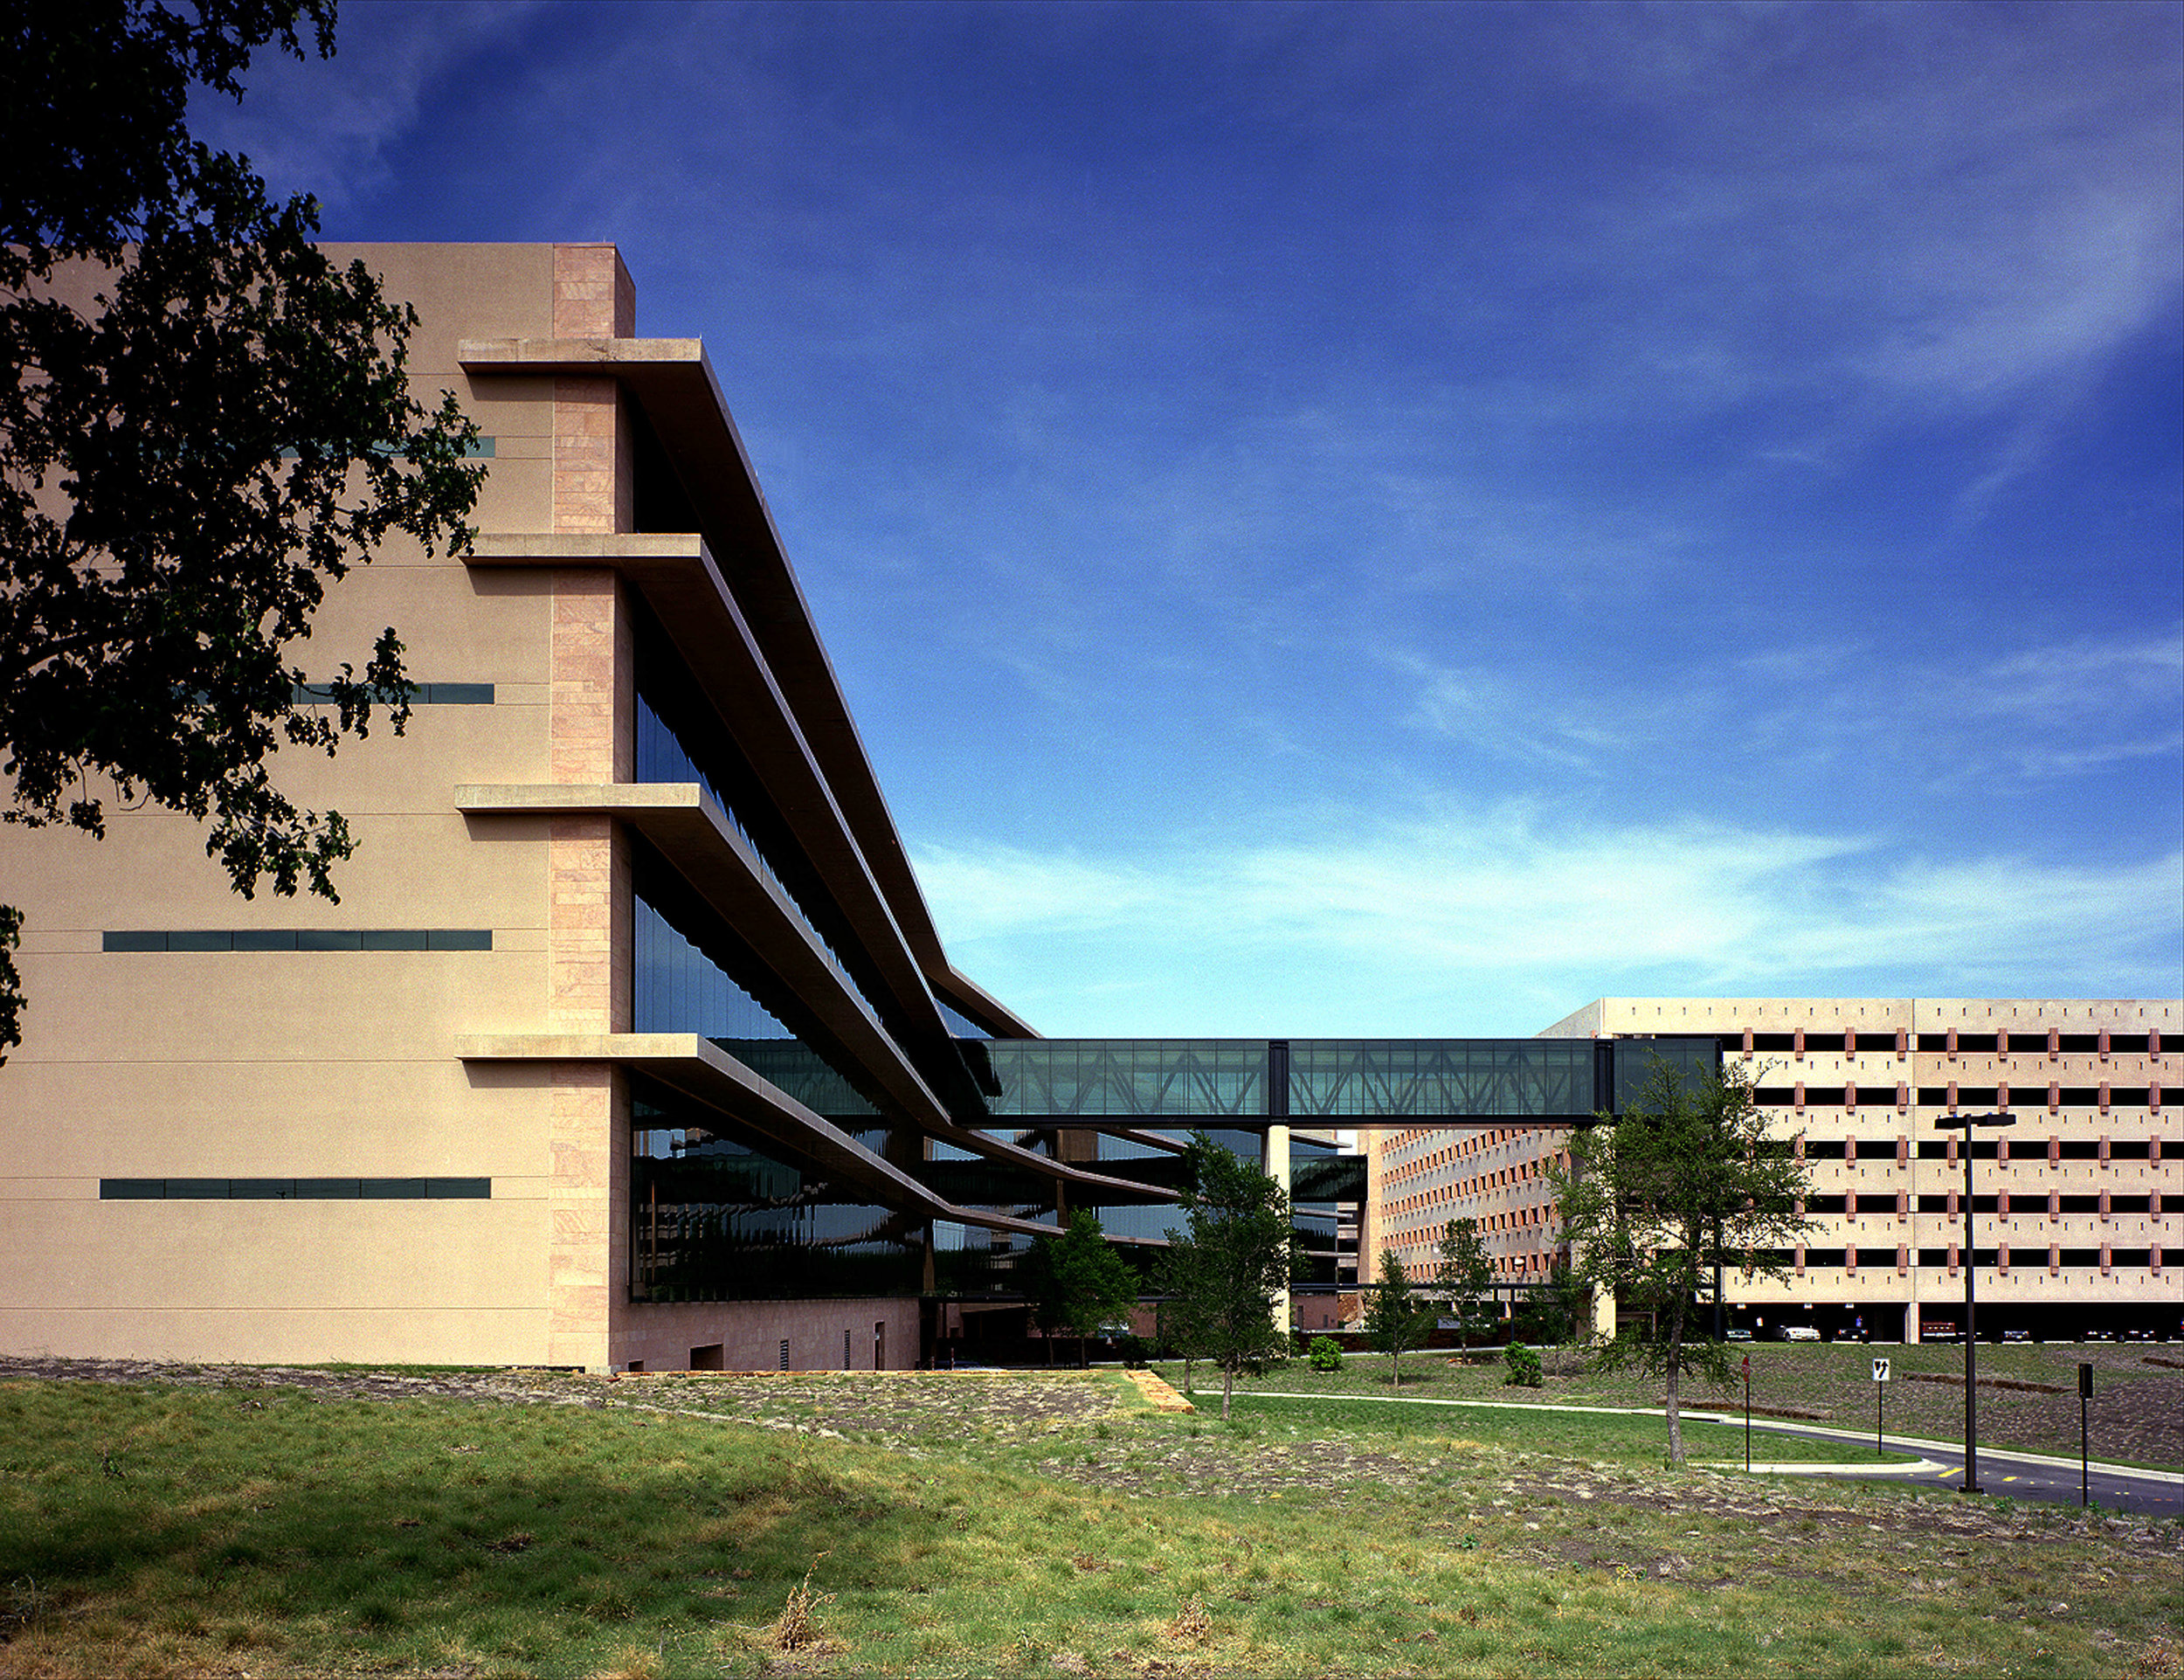 USAA Bank Services Building I & II